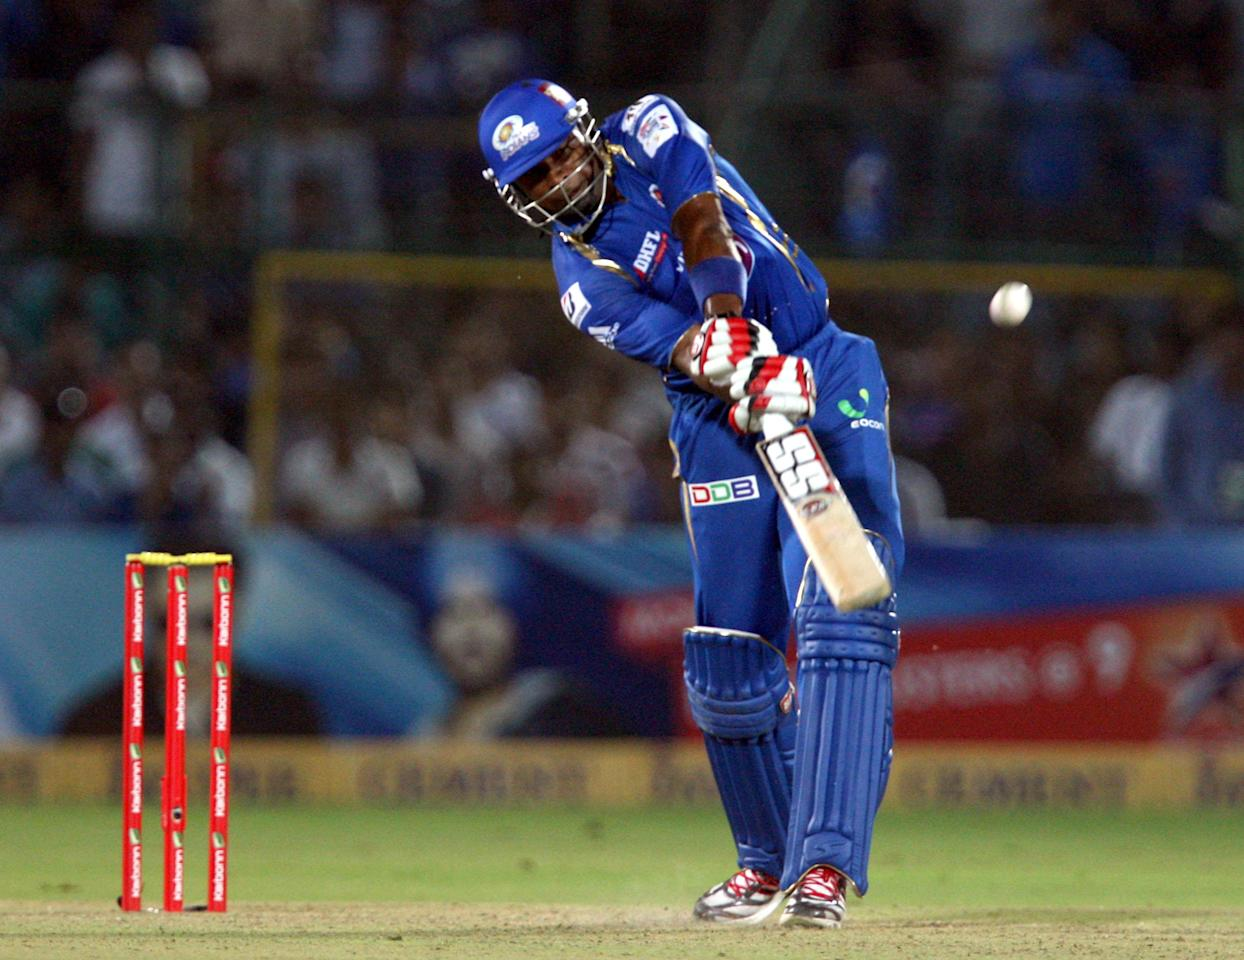 Mumbai Indians batsman Kieron Pollard in action during the CLT20 match against Rajasthan Royals at Sawai Mansingh Stadium, Jaipur on Sept. 21, 2013. (Photo: IANS)